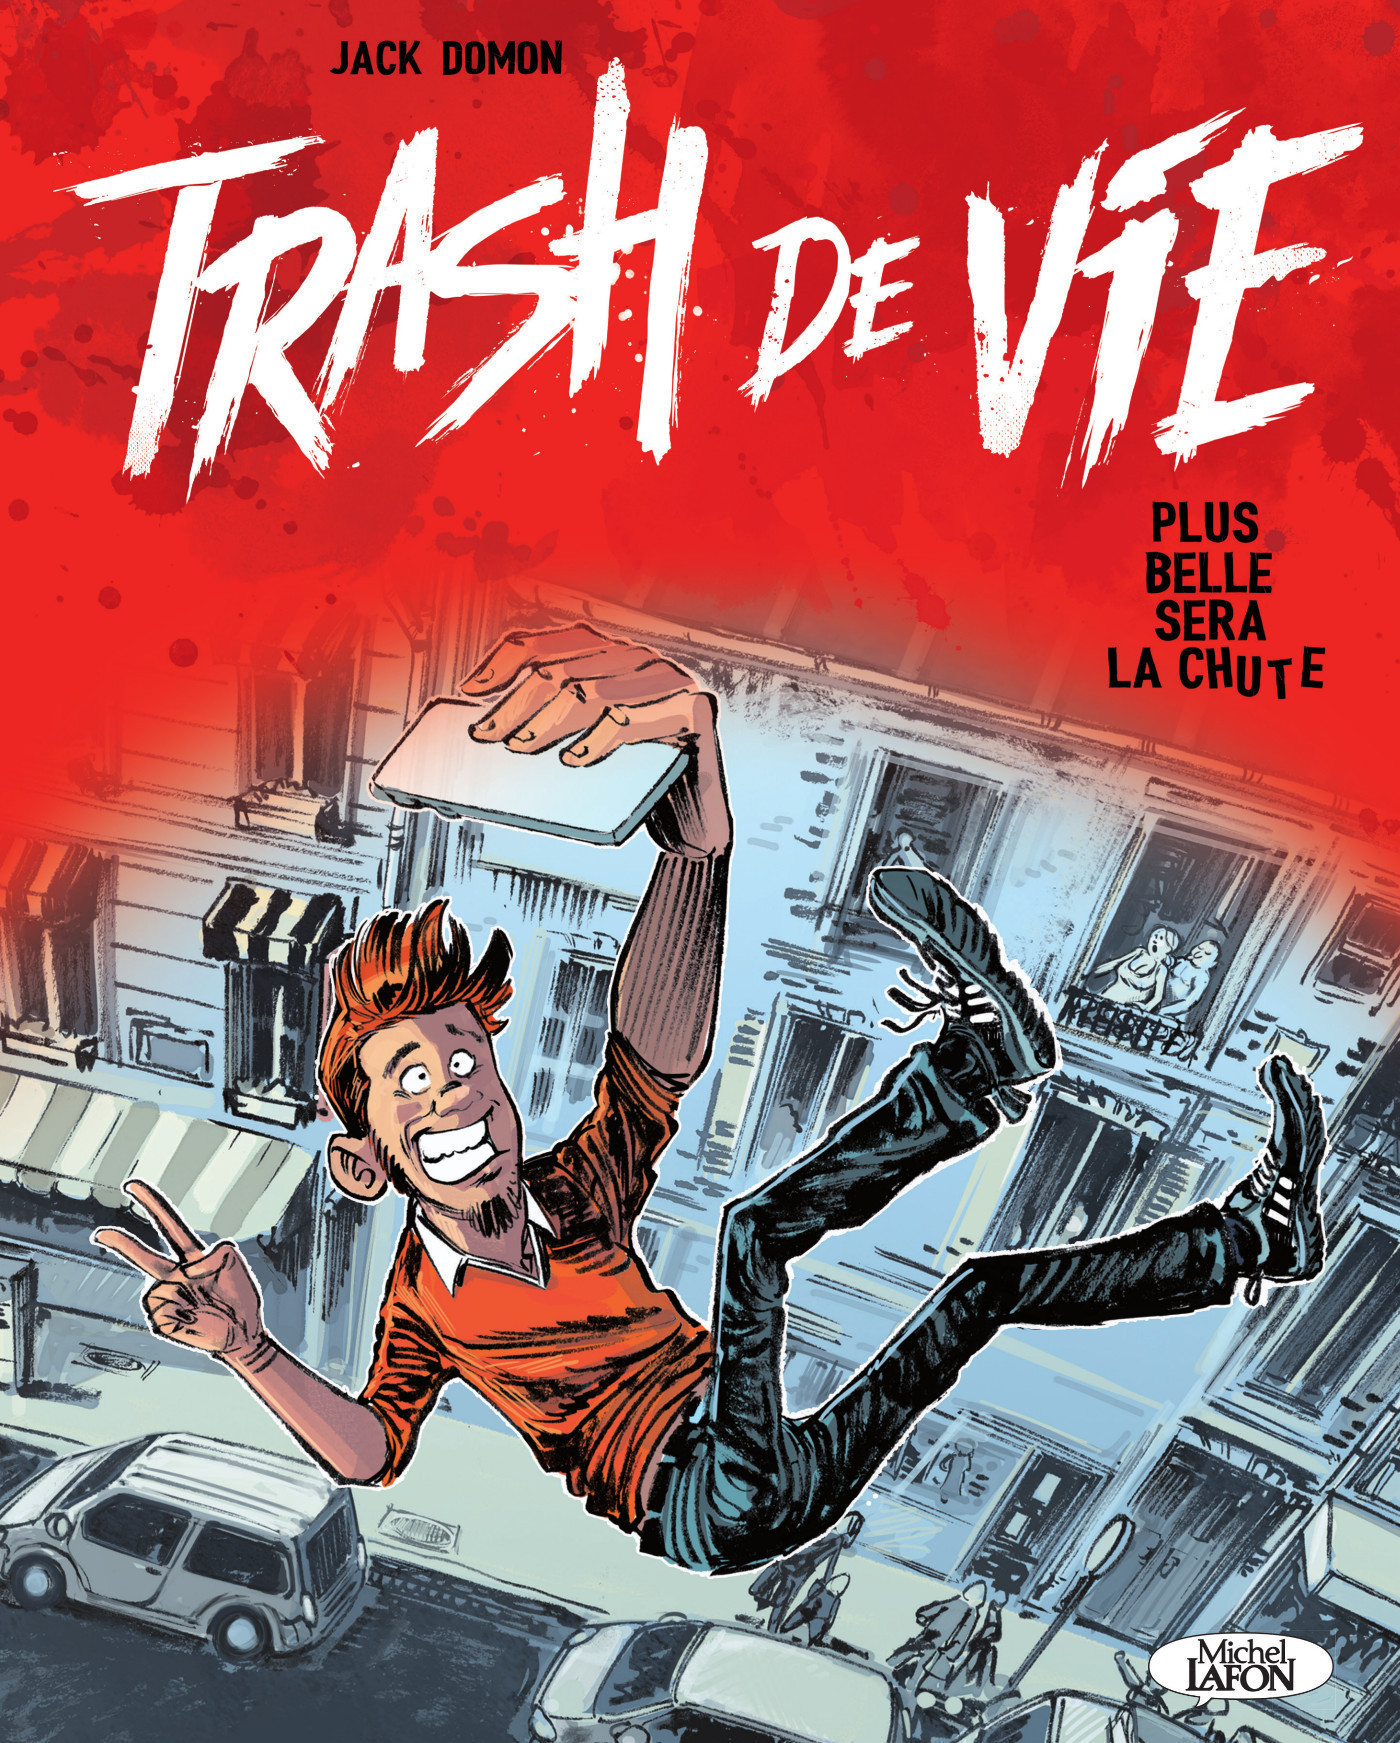 Trash de vie - Plus belle sera la chute